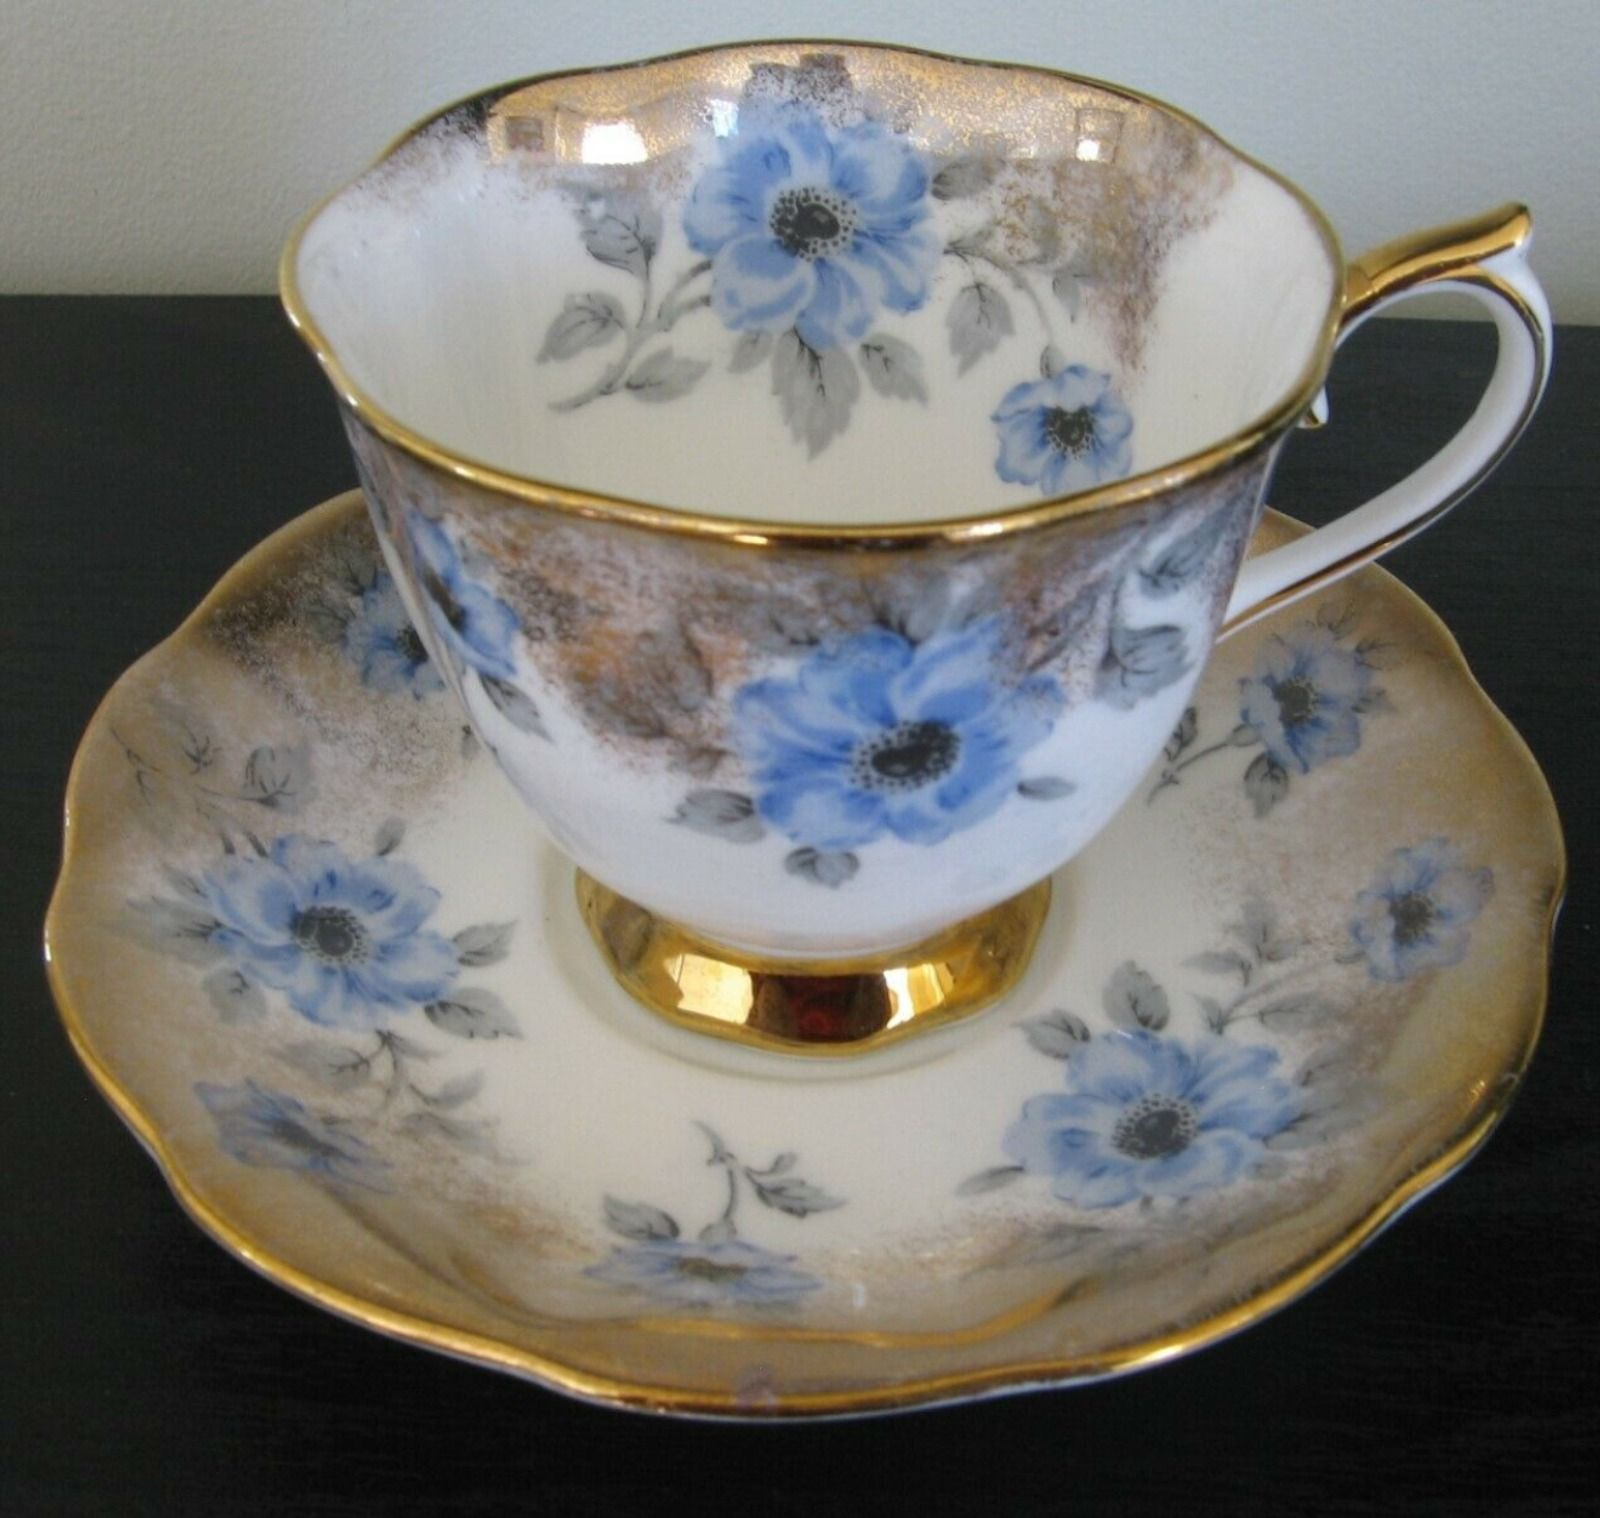 900 Royal Albert Collections Ideas In 2021 Modern Teaware Royal Albert Tableware Collection